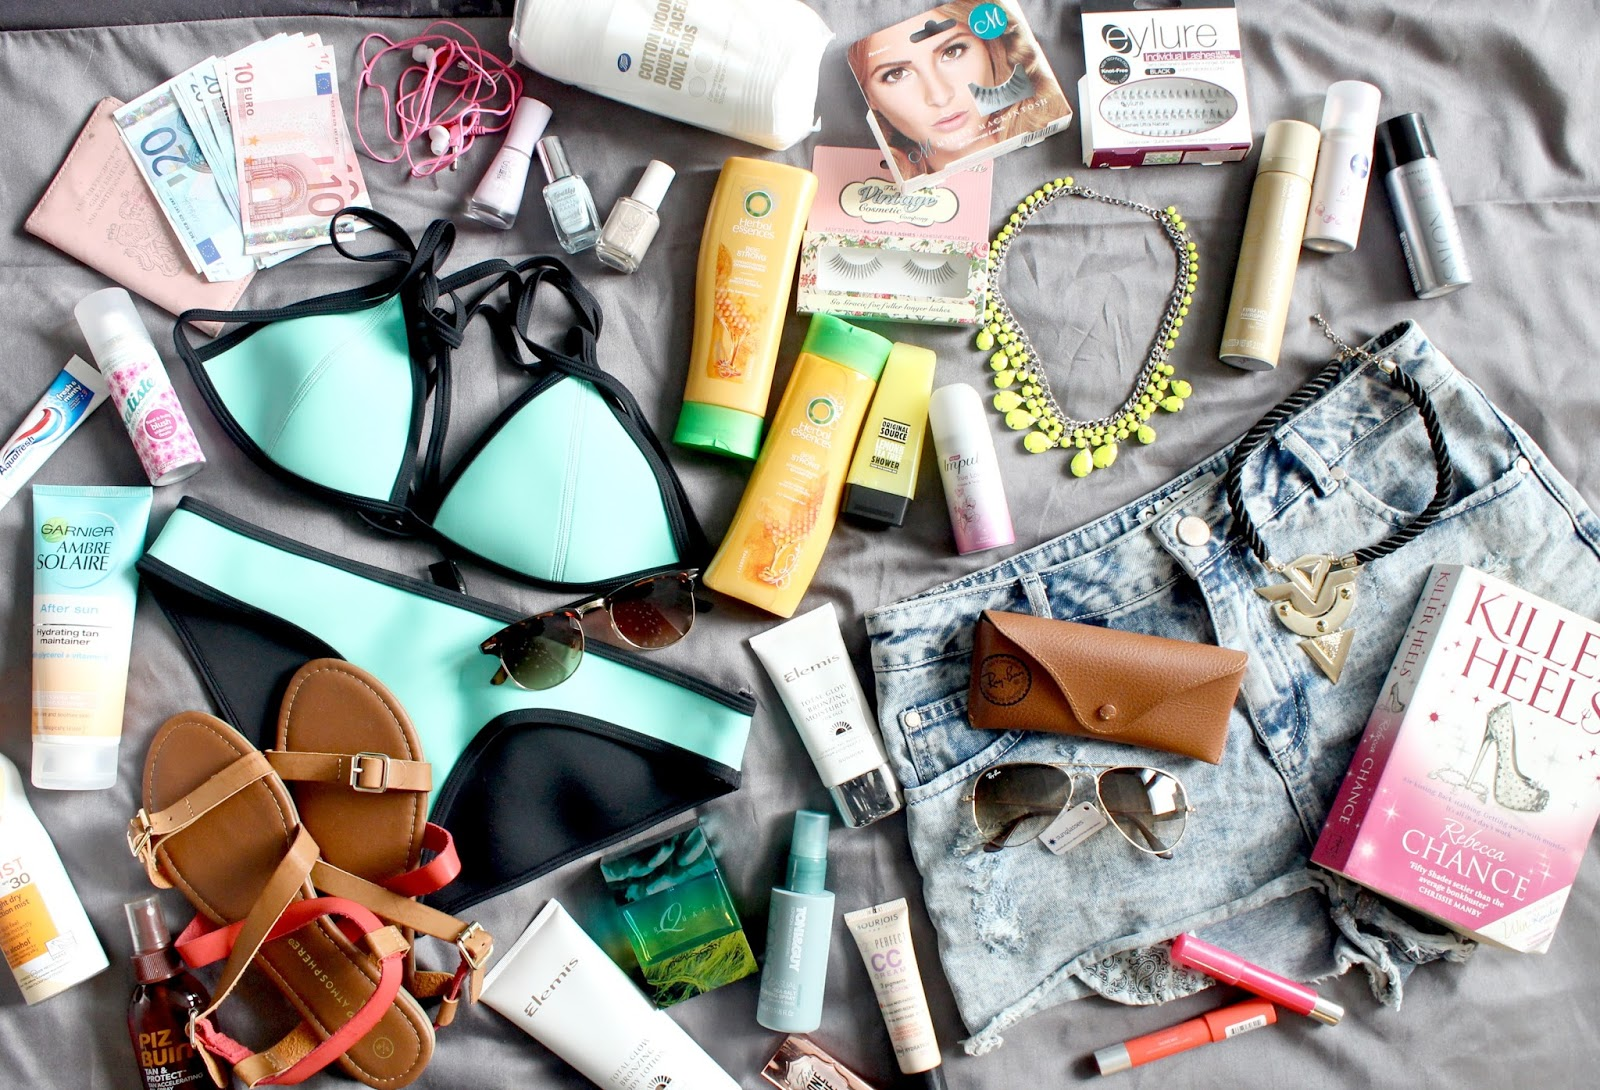 The Holiday Essentials, What to take on holiday, What's in my Suitcase, Packing for a Holiday, Holiday Beauty Essentials